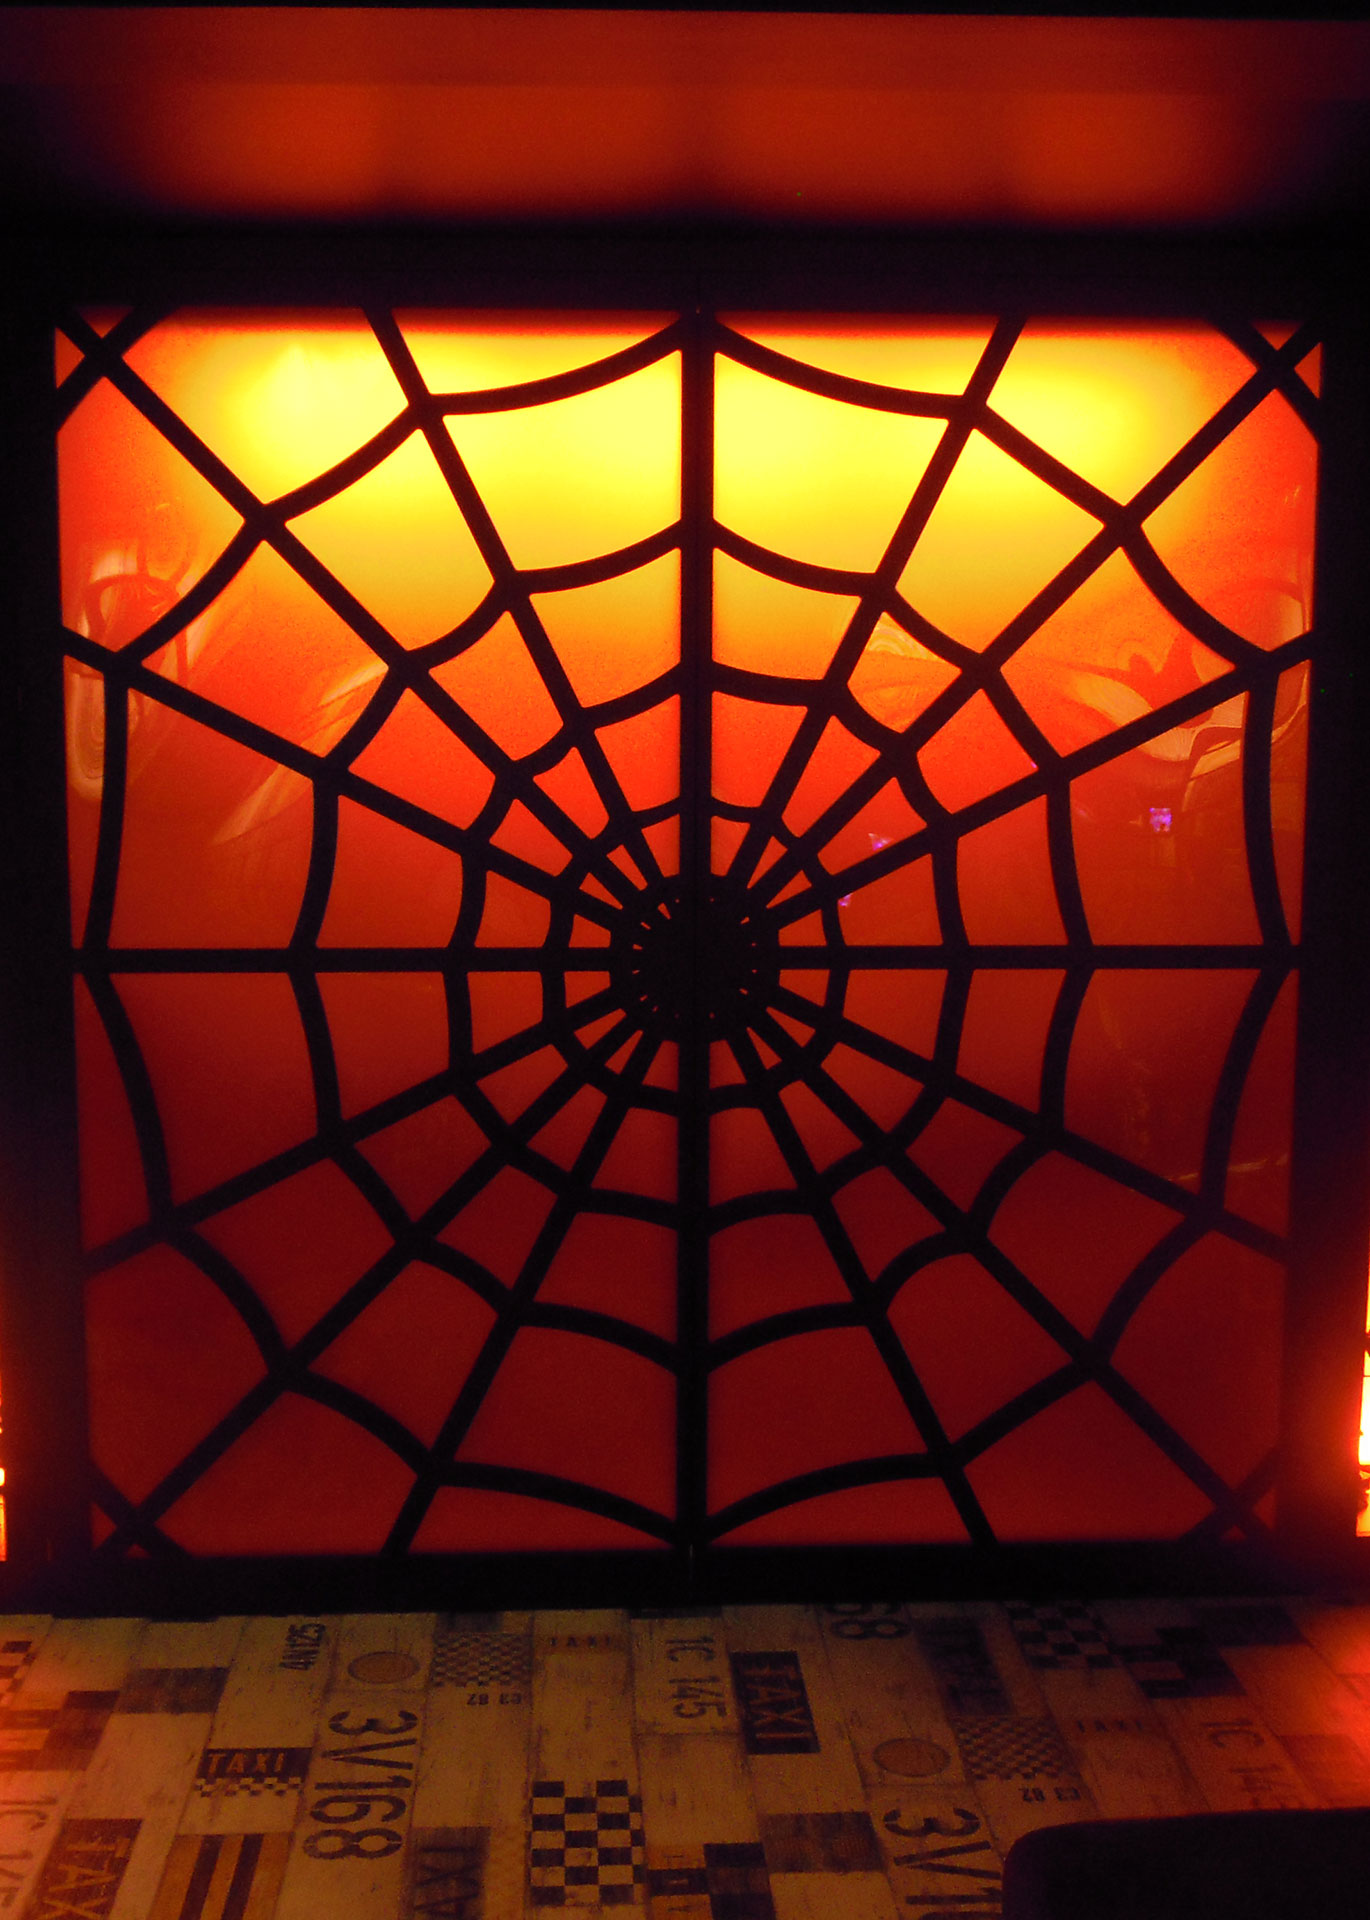 spider-creation-objet-quasart-web